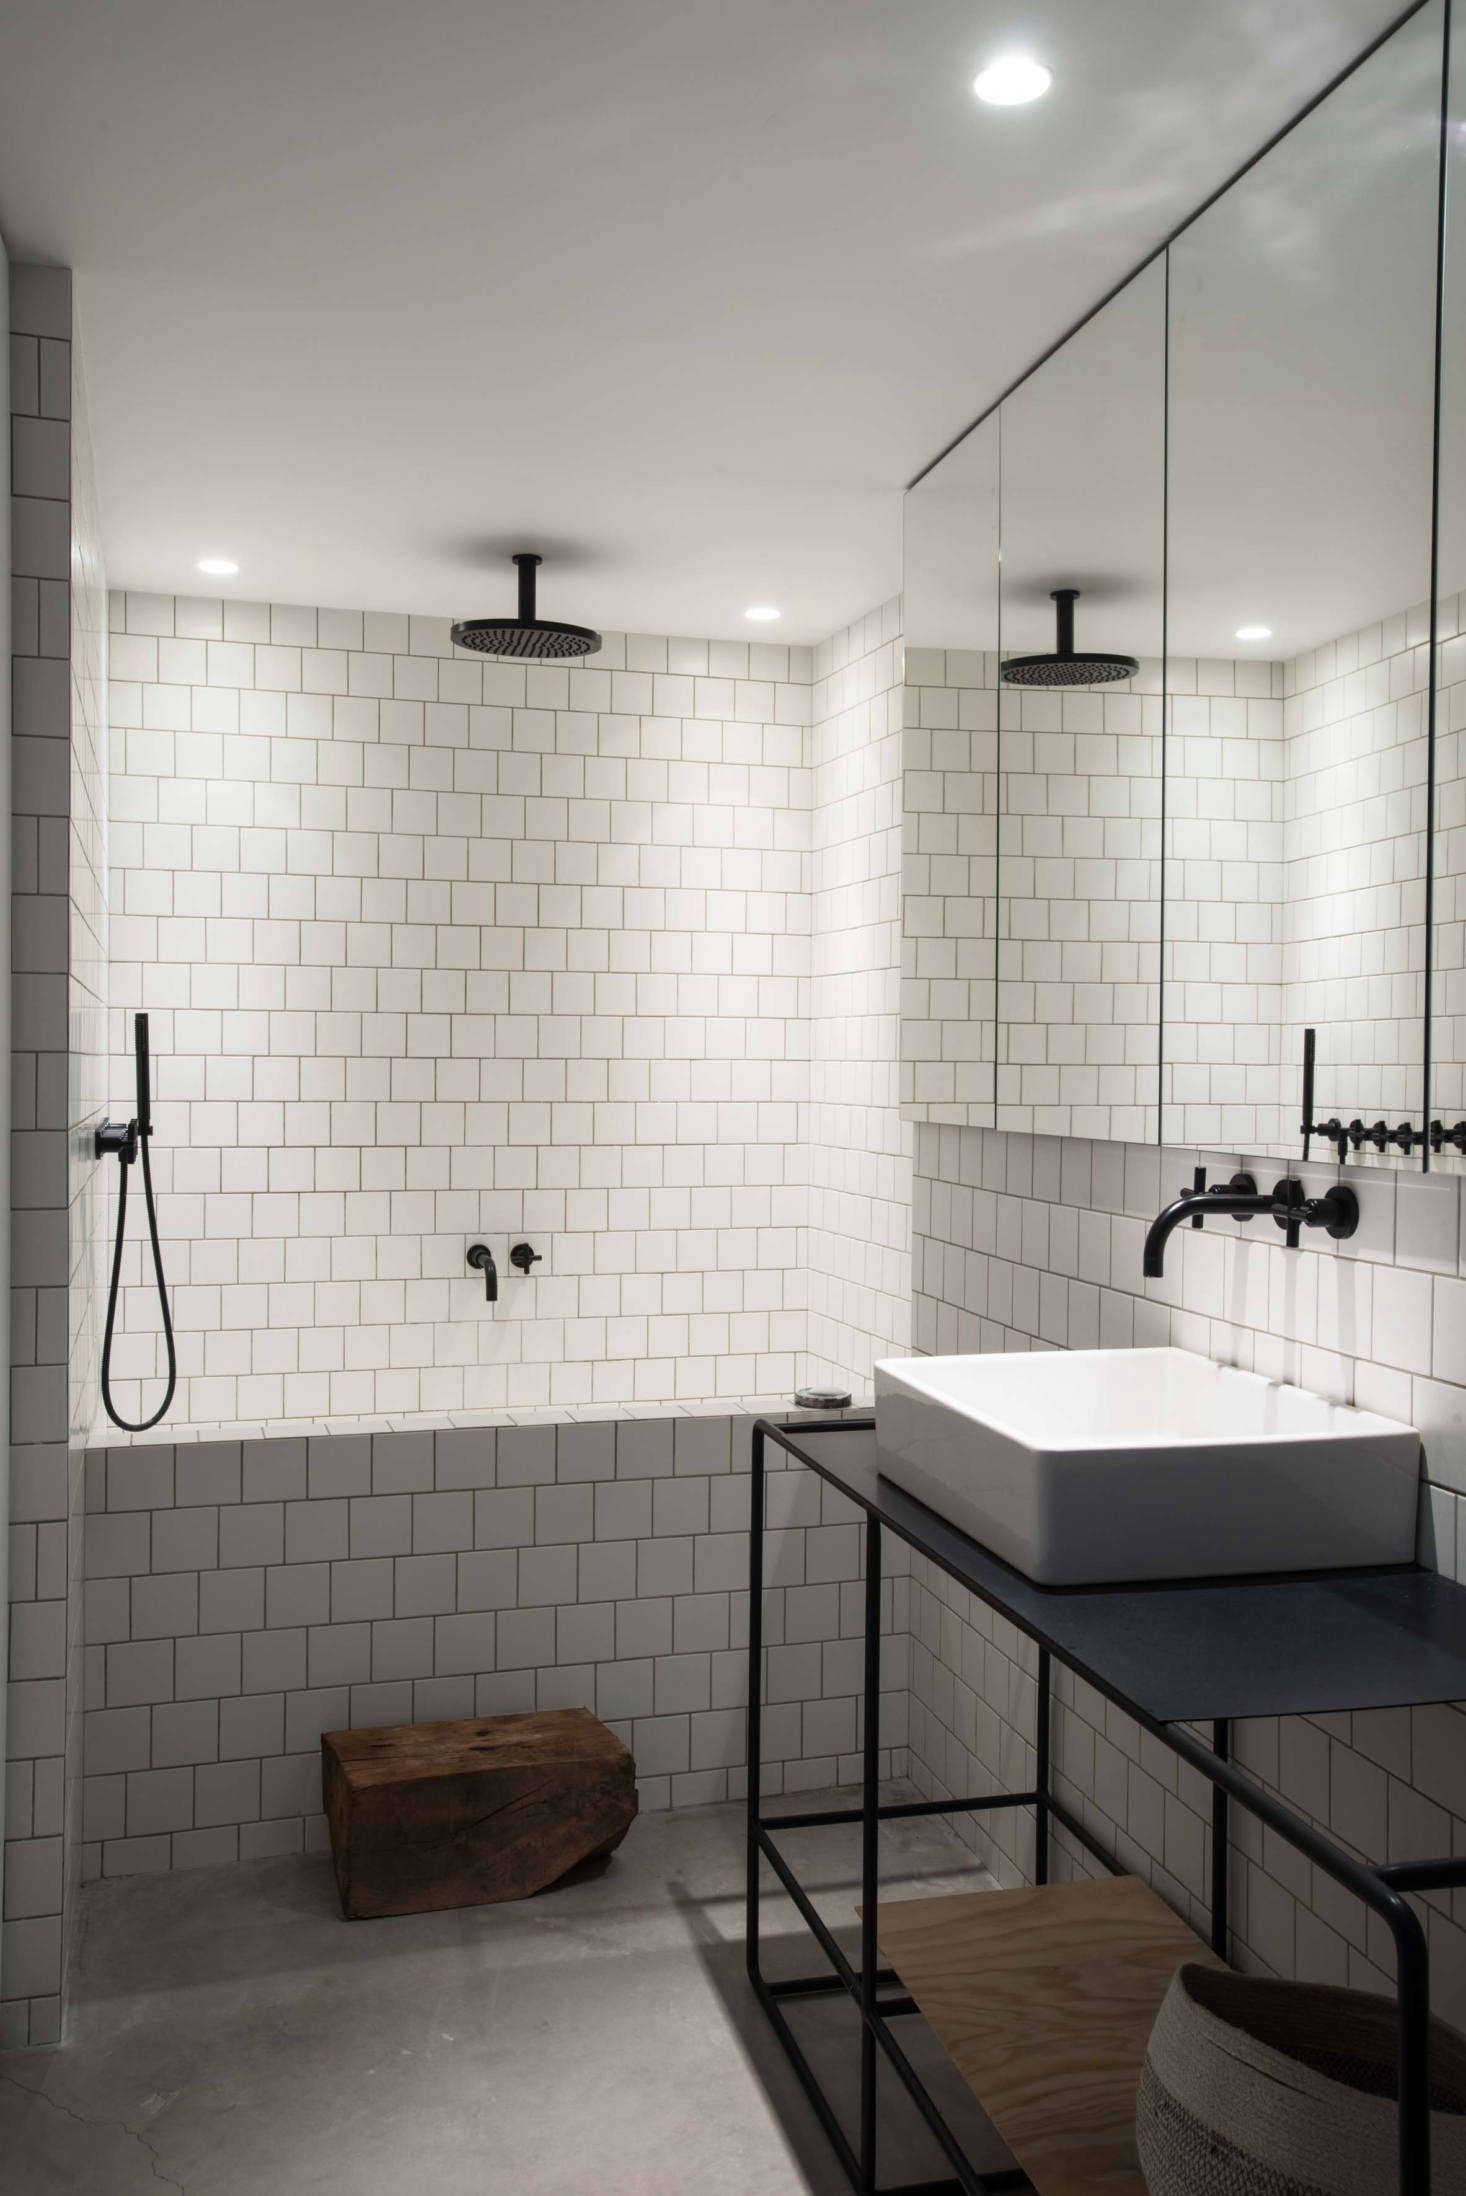 Villeroy & Bosch Pro Architectura classic square tiles line the black-and-white master bath, including the tub surround. The steel sink frame is a custom design and the black faucets and shower hardware are by Duravit.